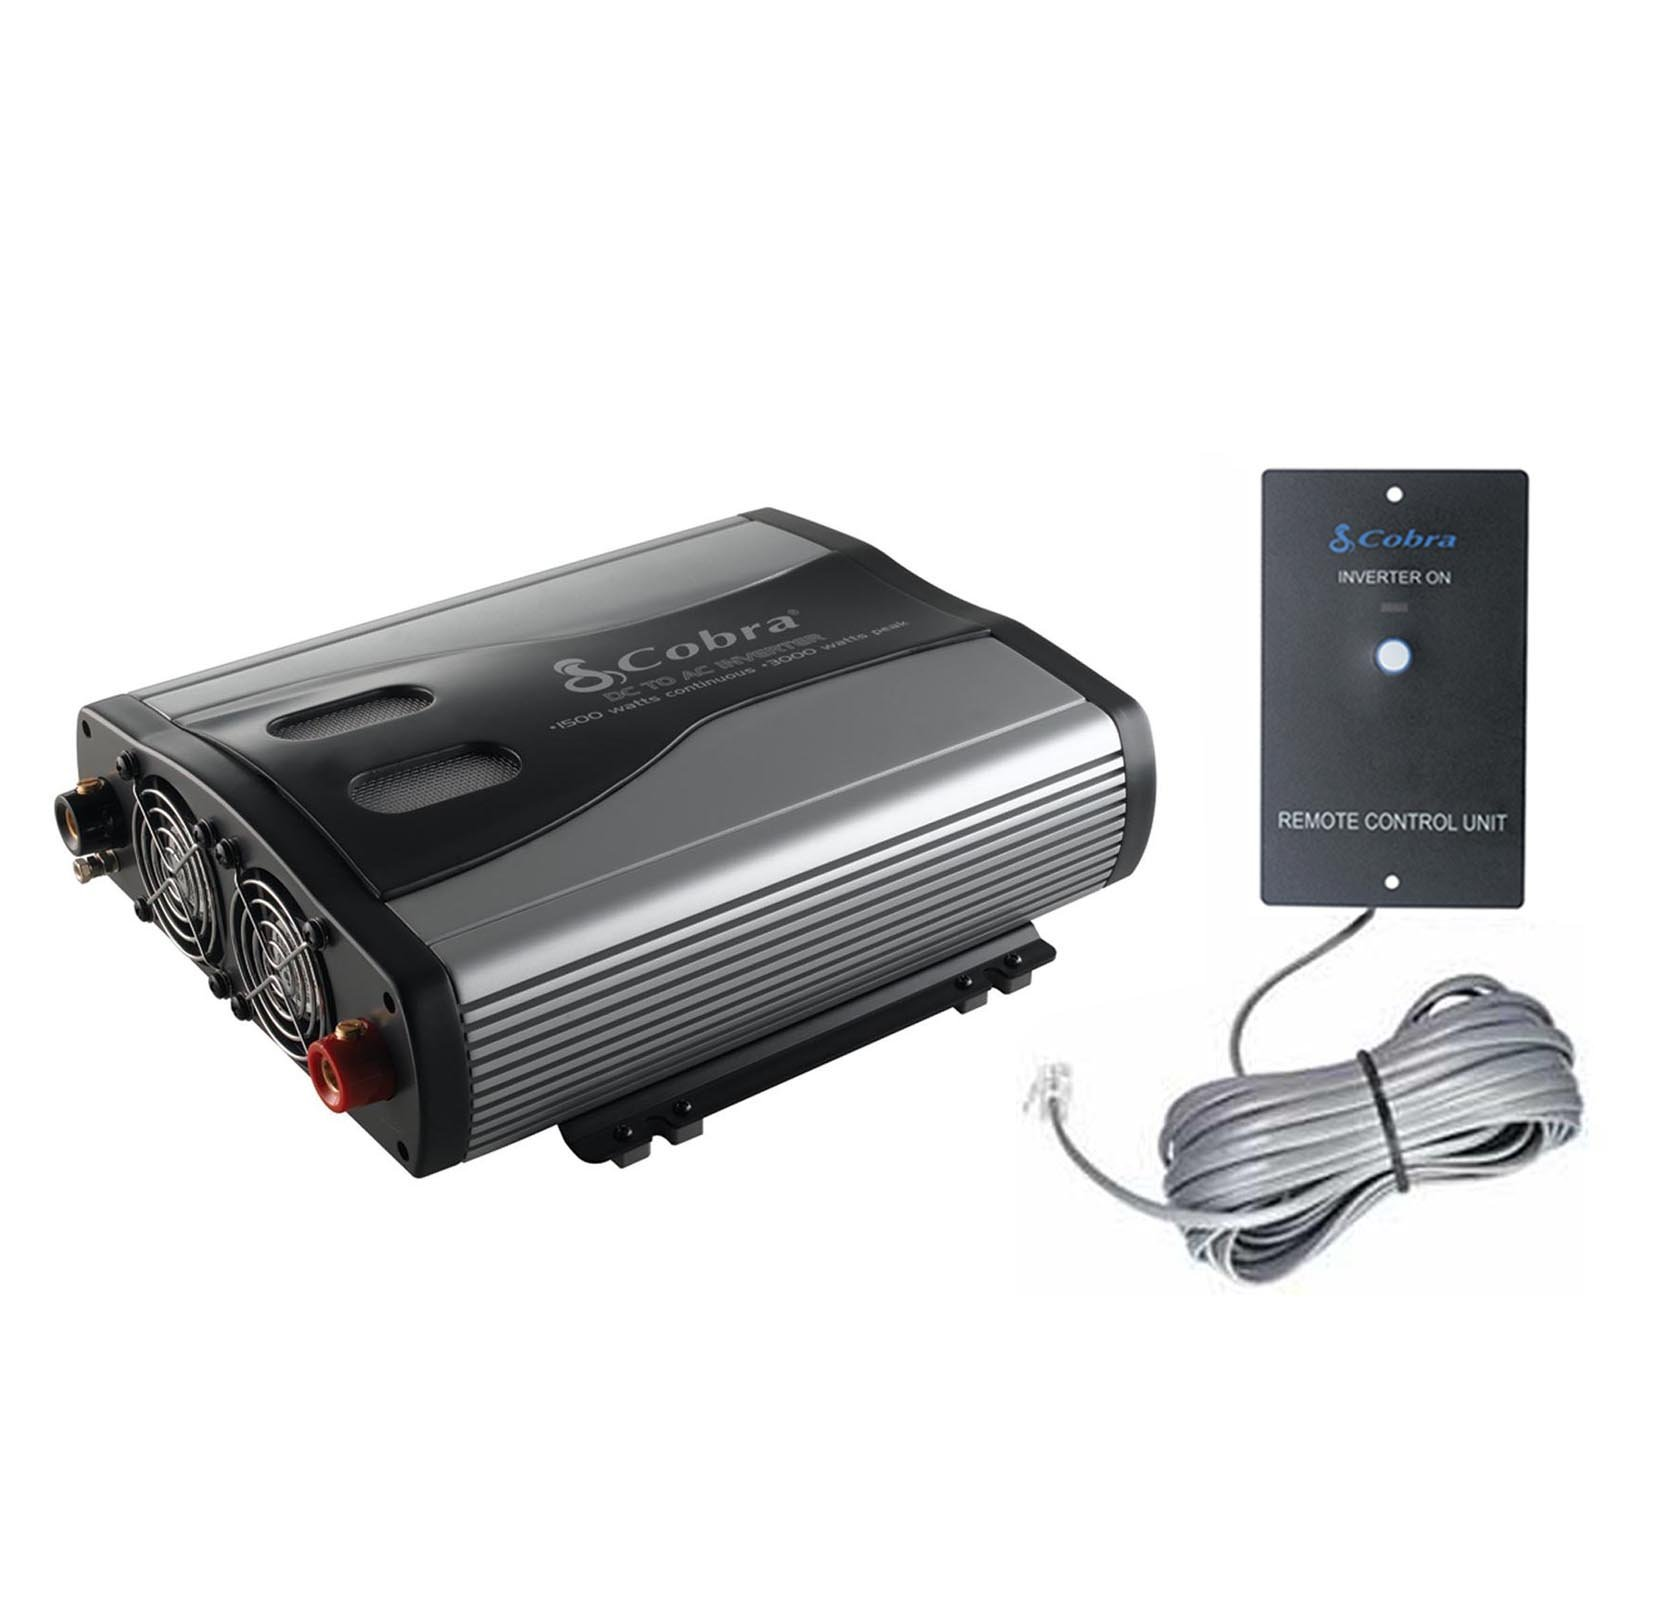 Cobra CPI1575 1500 Watt 3 Outlets DC to AC Car Power Inverter w/ Remote Control